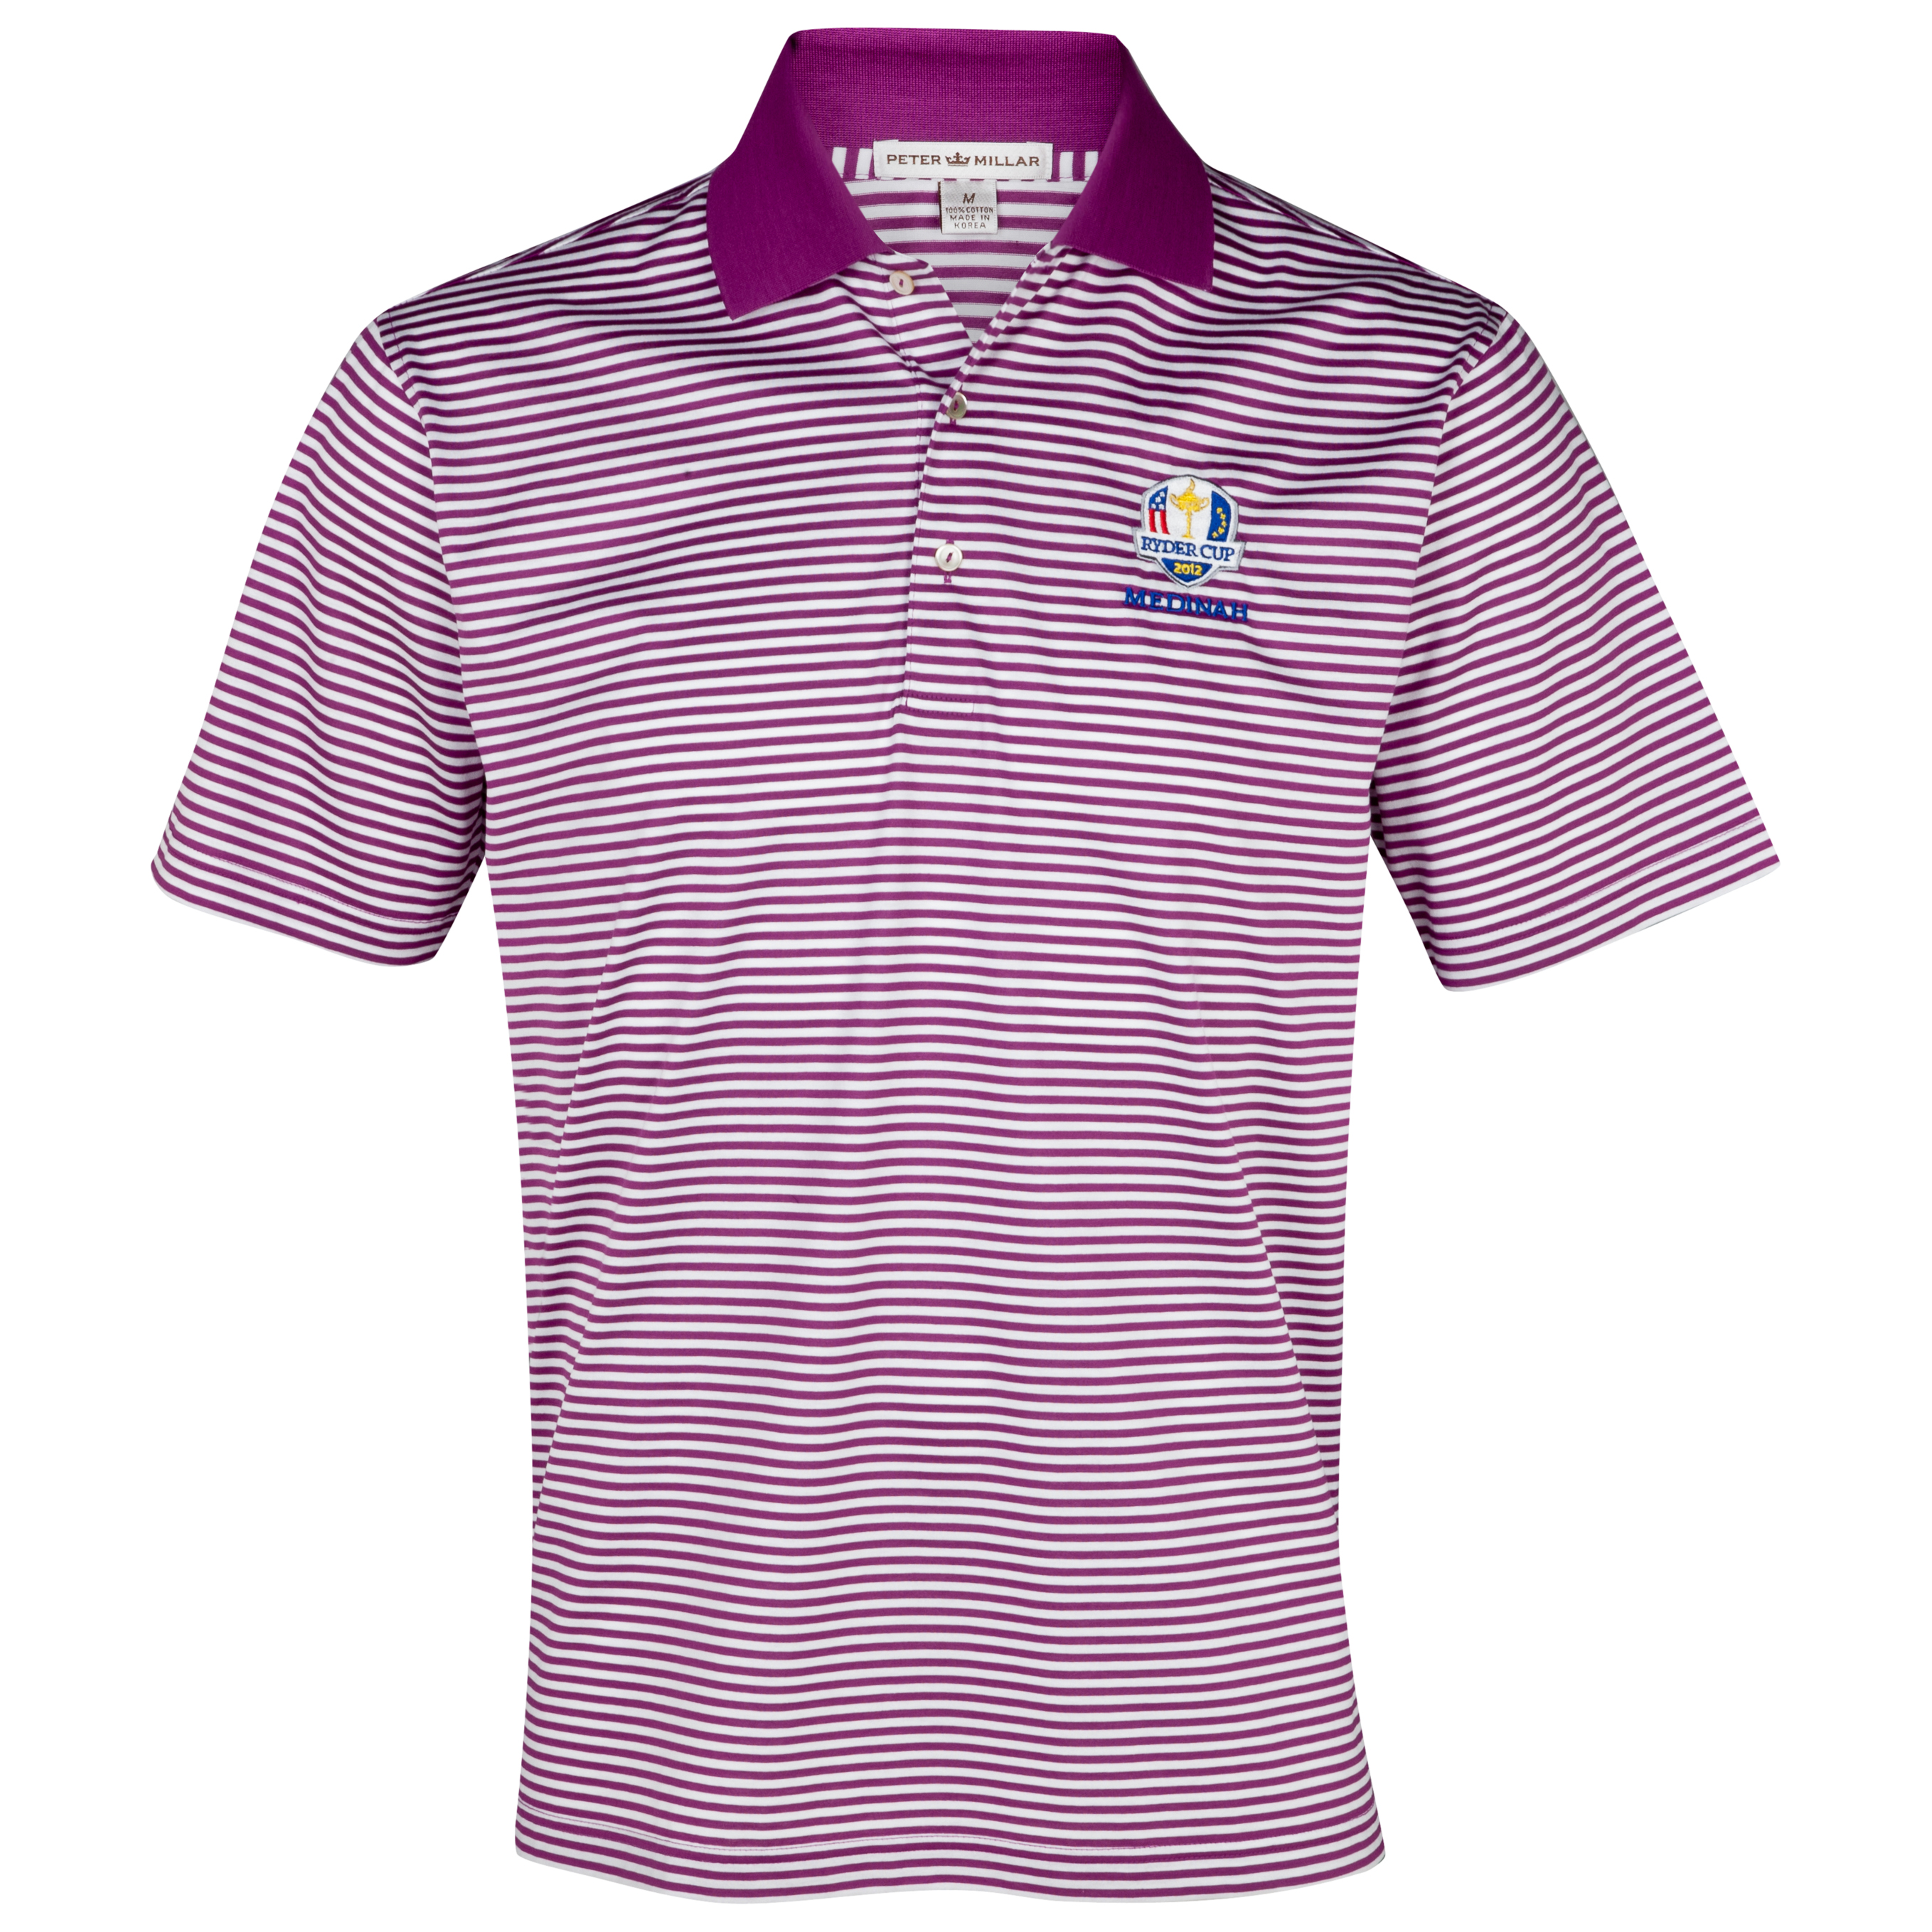 The 2012 Ryder Cup Peter Millar Luxury Stripe Polo - Raspberry/White